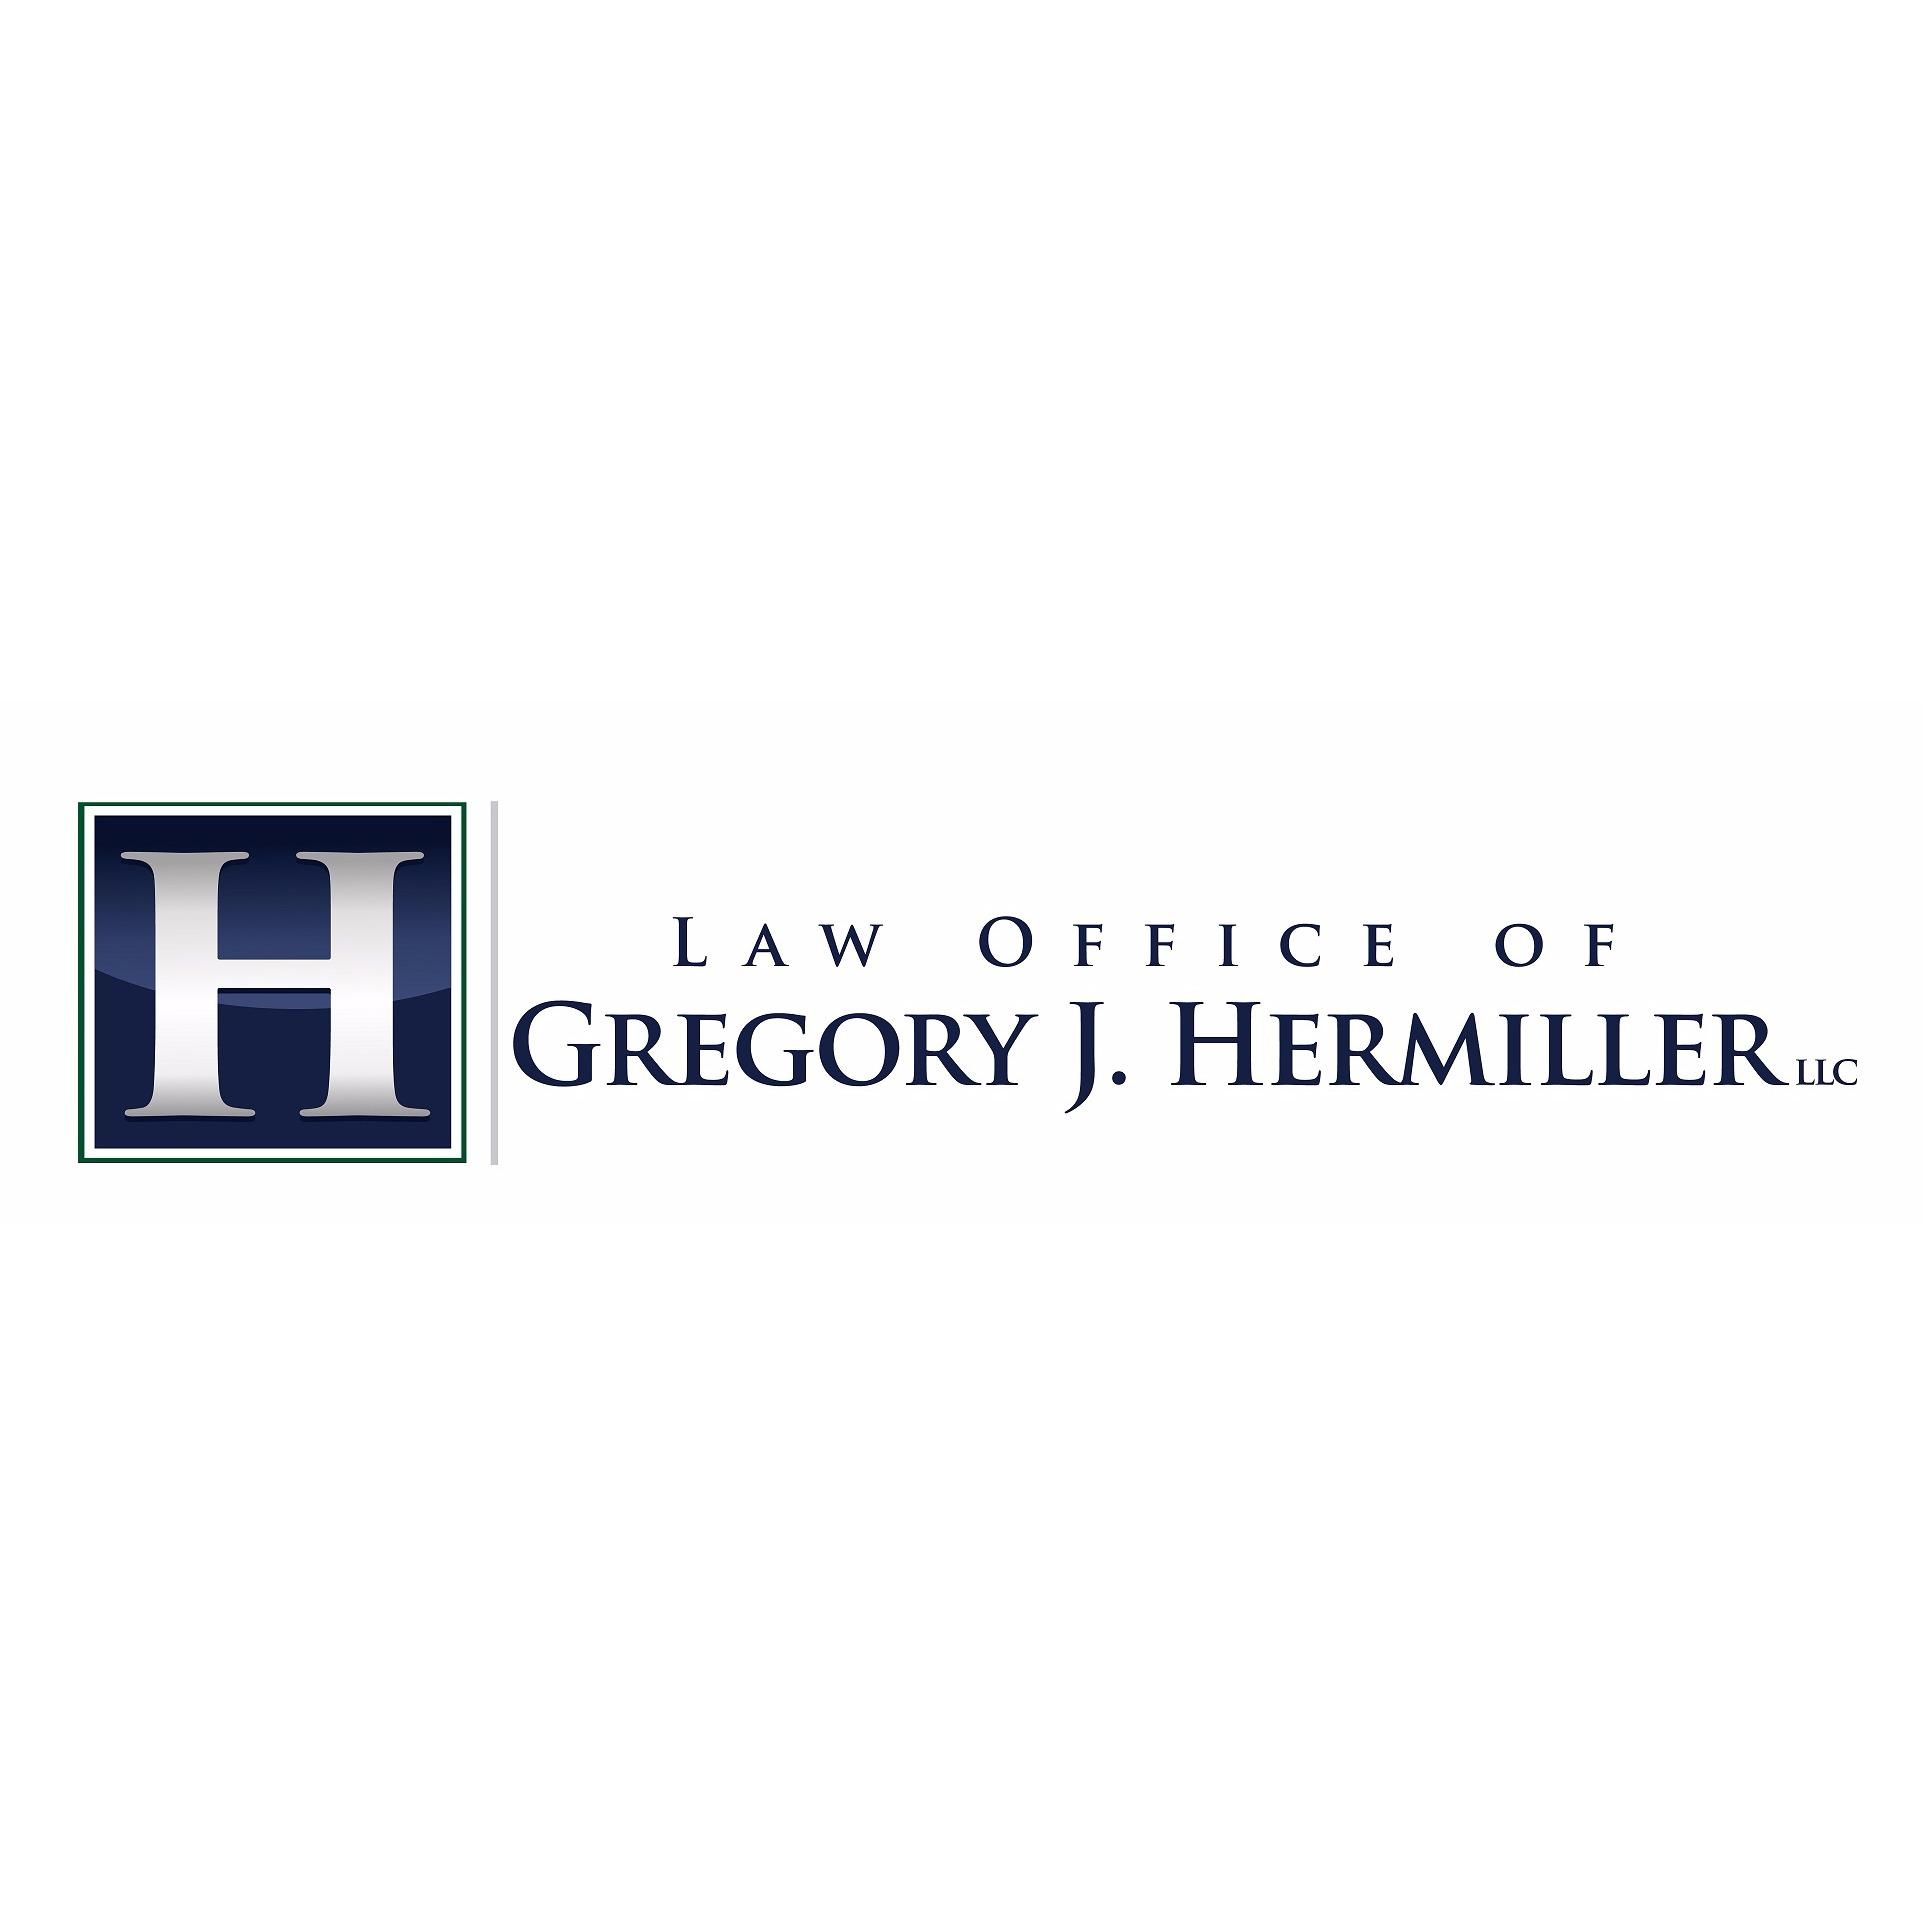 Law Office of Gregory J. Hermiller LLC Logo